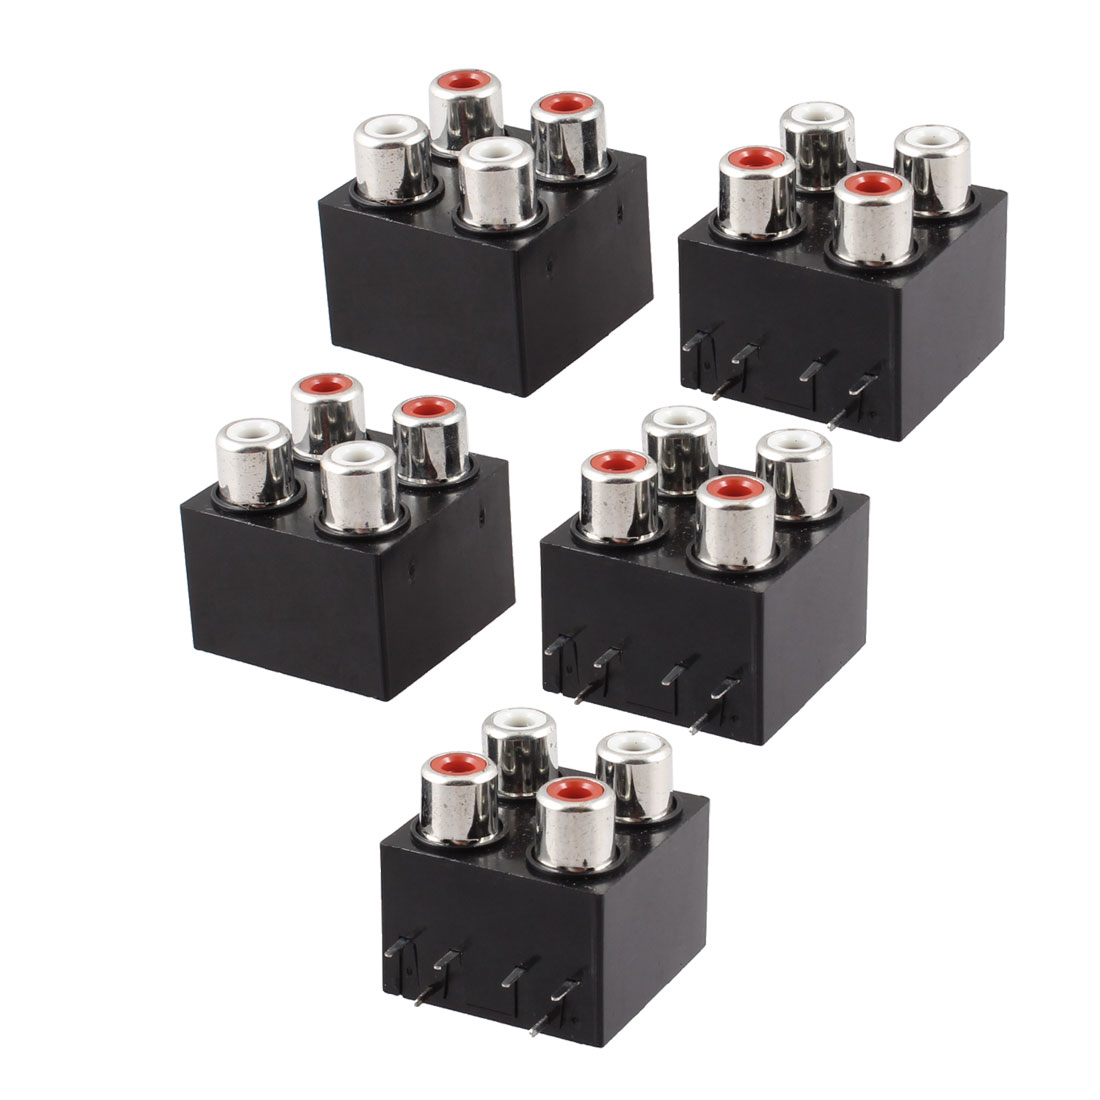 Black 6 Pins 4 RCA Female Outlet AV Concentric Socket Connector 5 Pcs